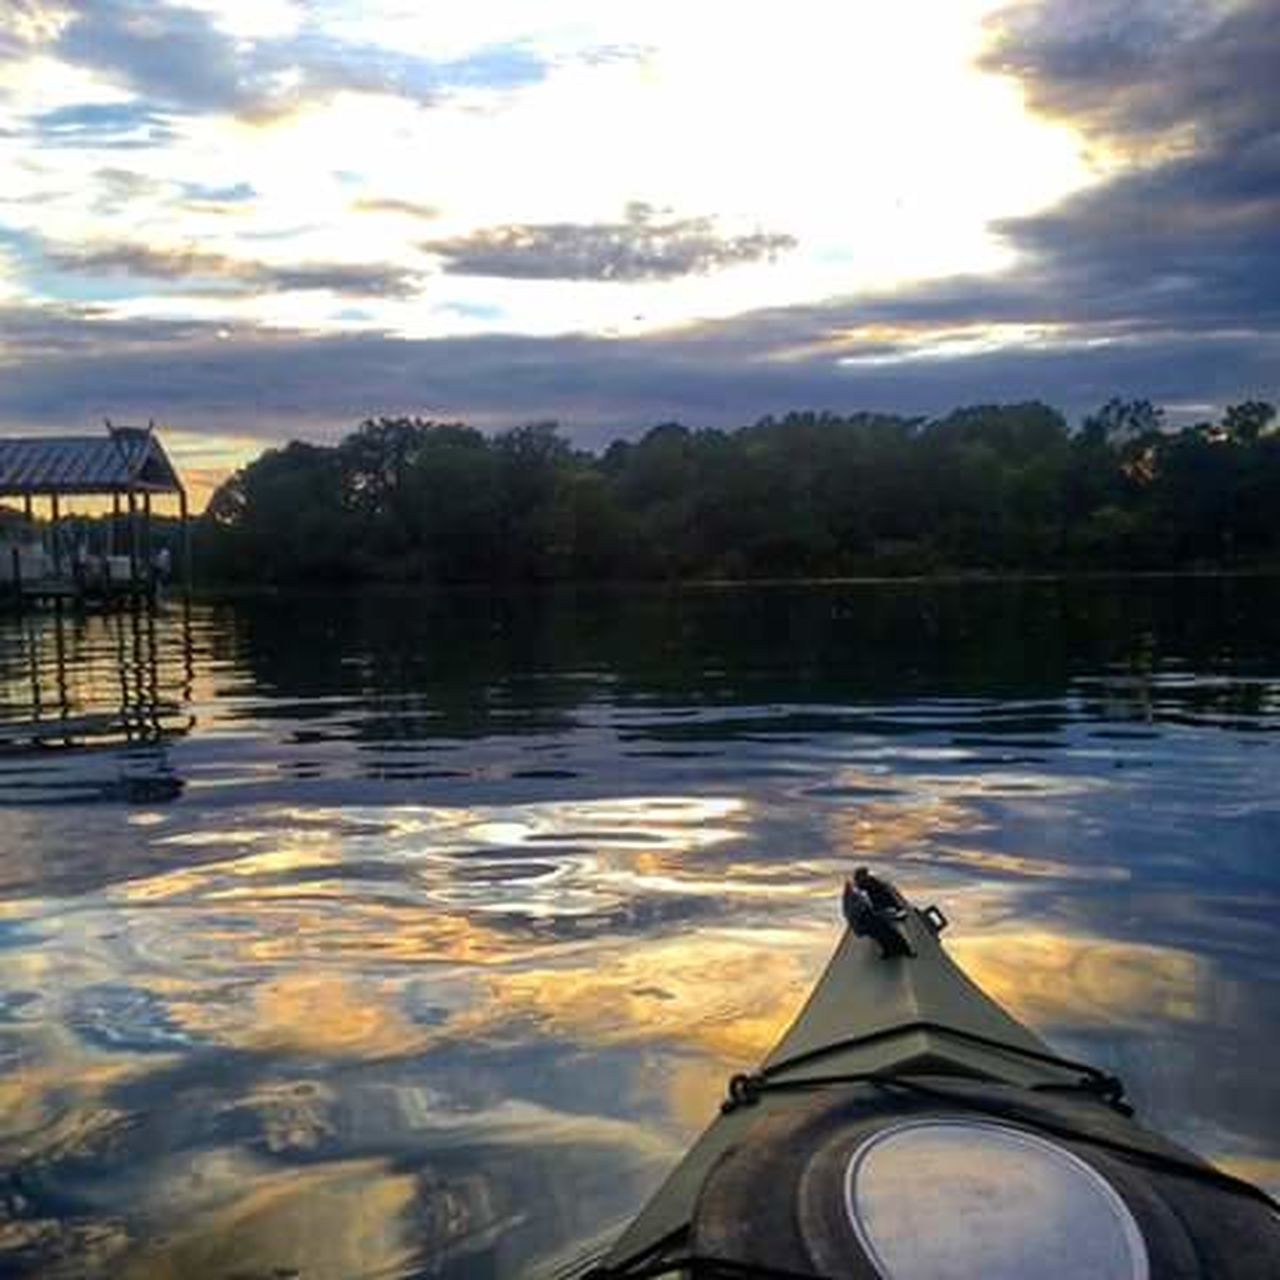 water, nature, lake, sunset, outdoors, tranquility, sky, nautical vessel, scenics, cloud - sky, reflection, rippled, no people, beauty in nature, tree, tranquil scene, day, kayak